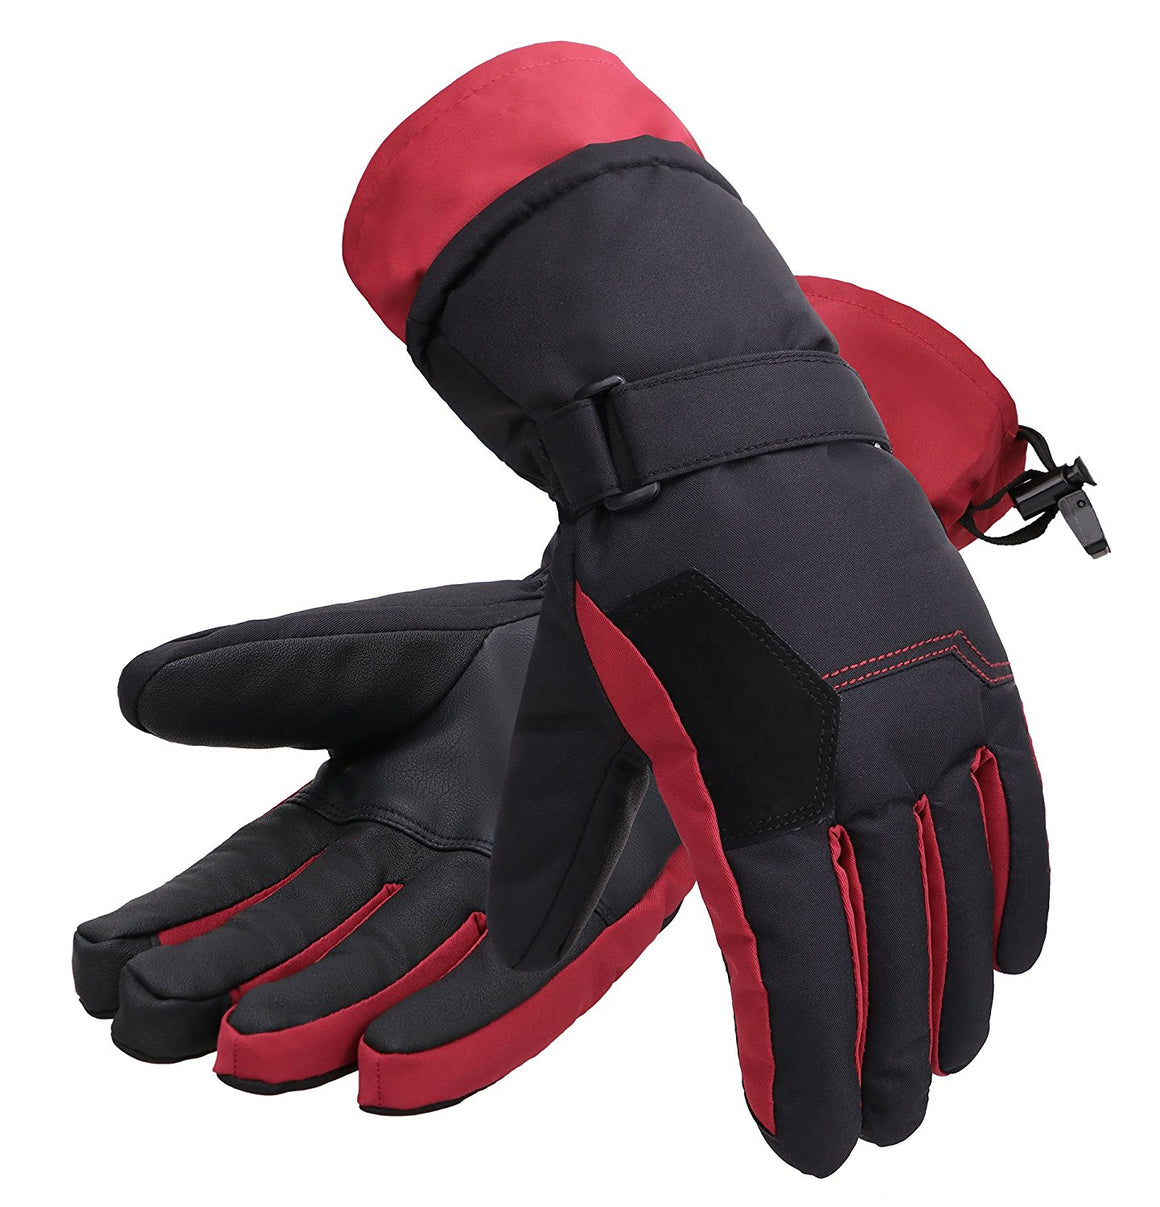 Andorra Women's Two-Tone Geometric Touchscreen Ski Glove - Red